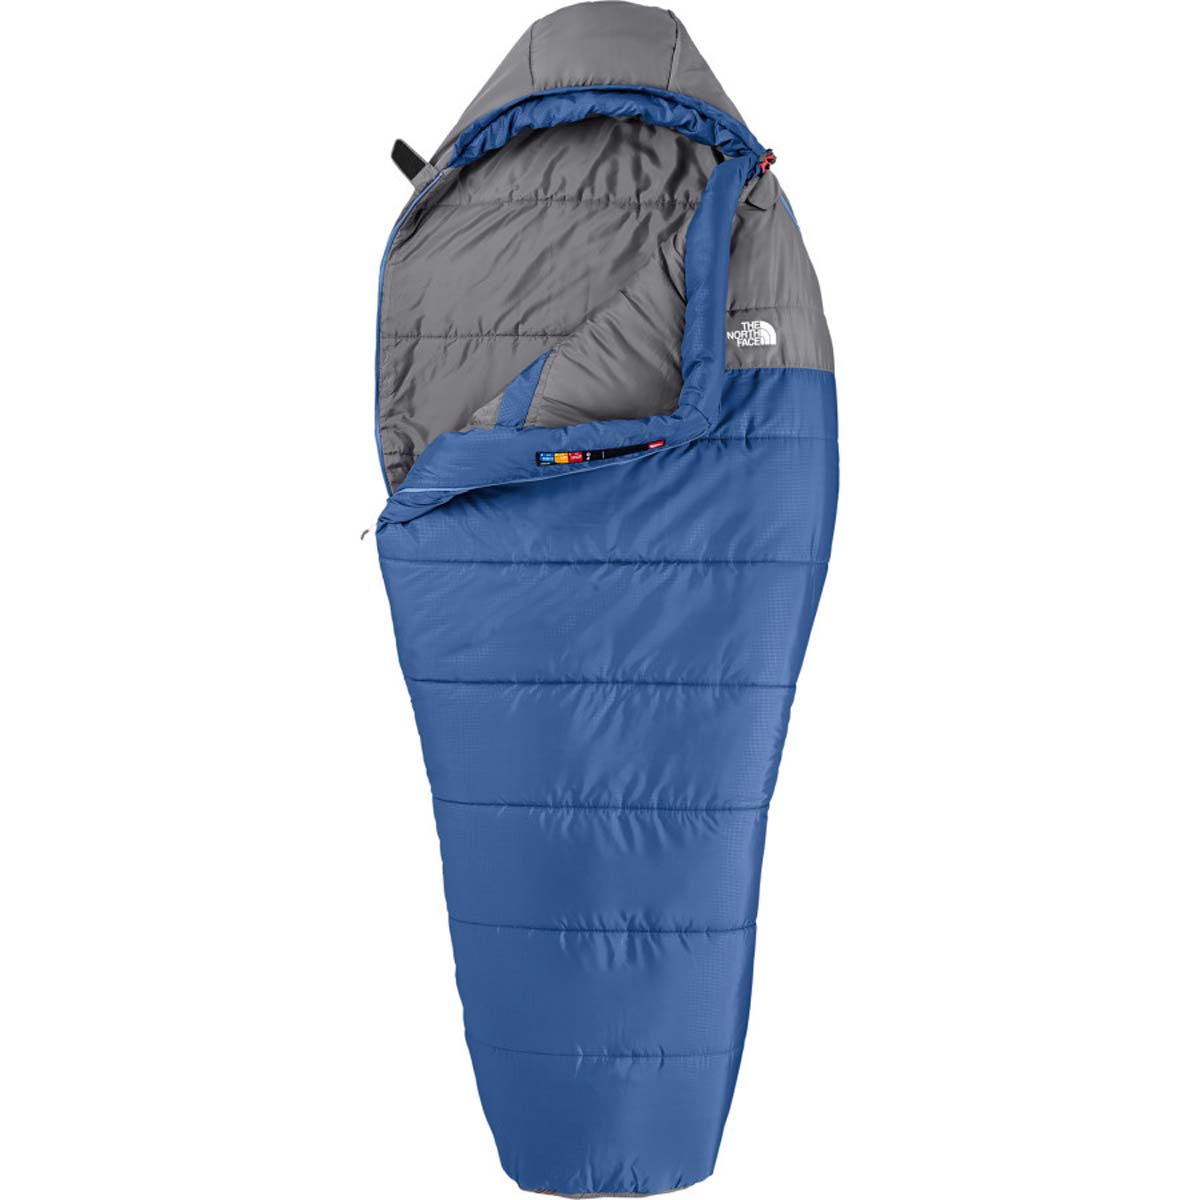 -9 Celcius sleeping bag by The North Face